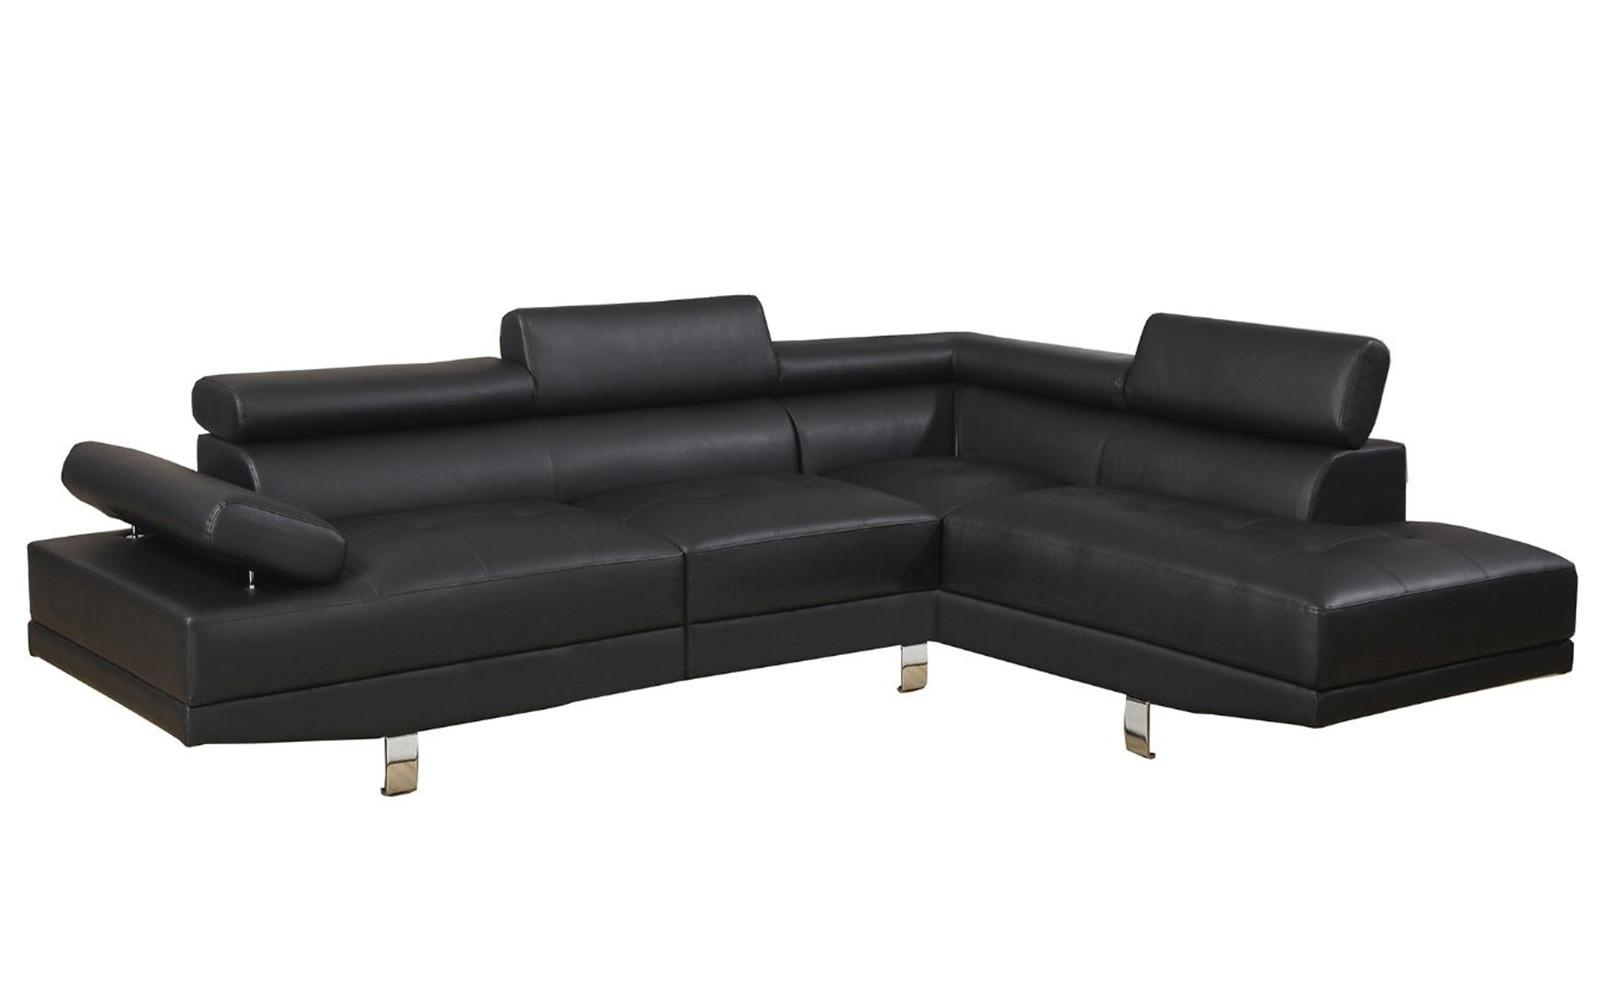 2 Piece Modern Bonded Leather Right Facing Chaise Sectional Sofa within Sectional Sofa With 2 Chaises